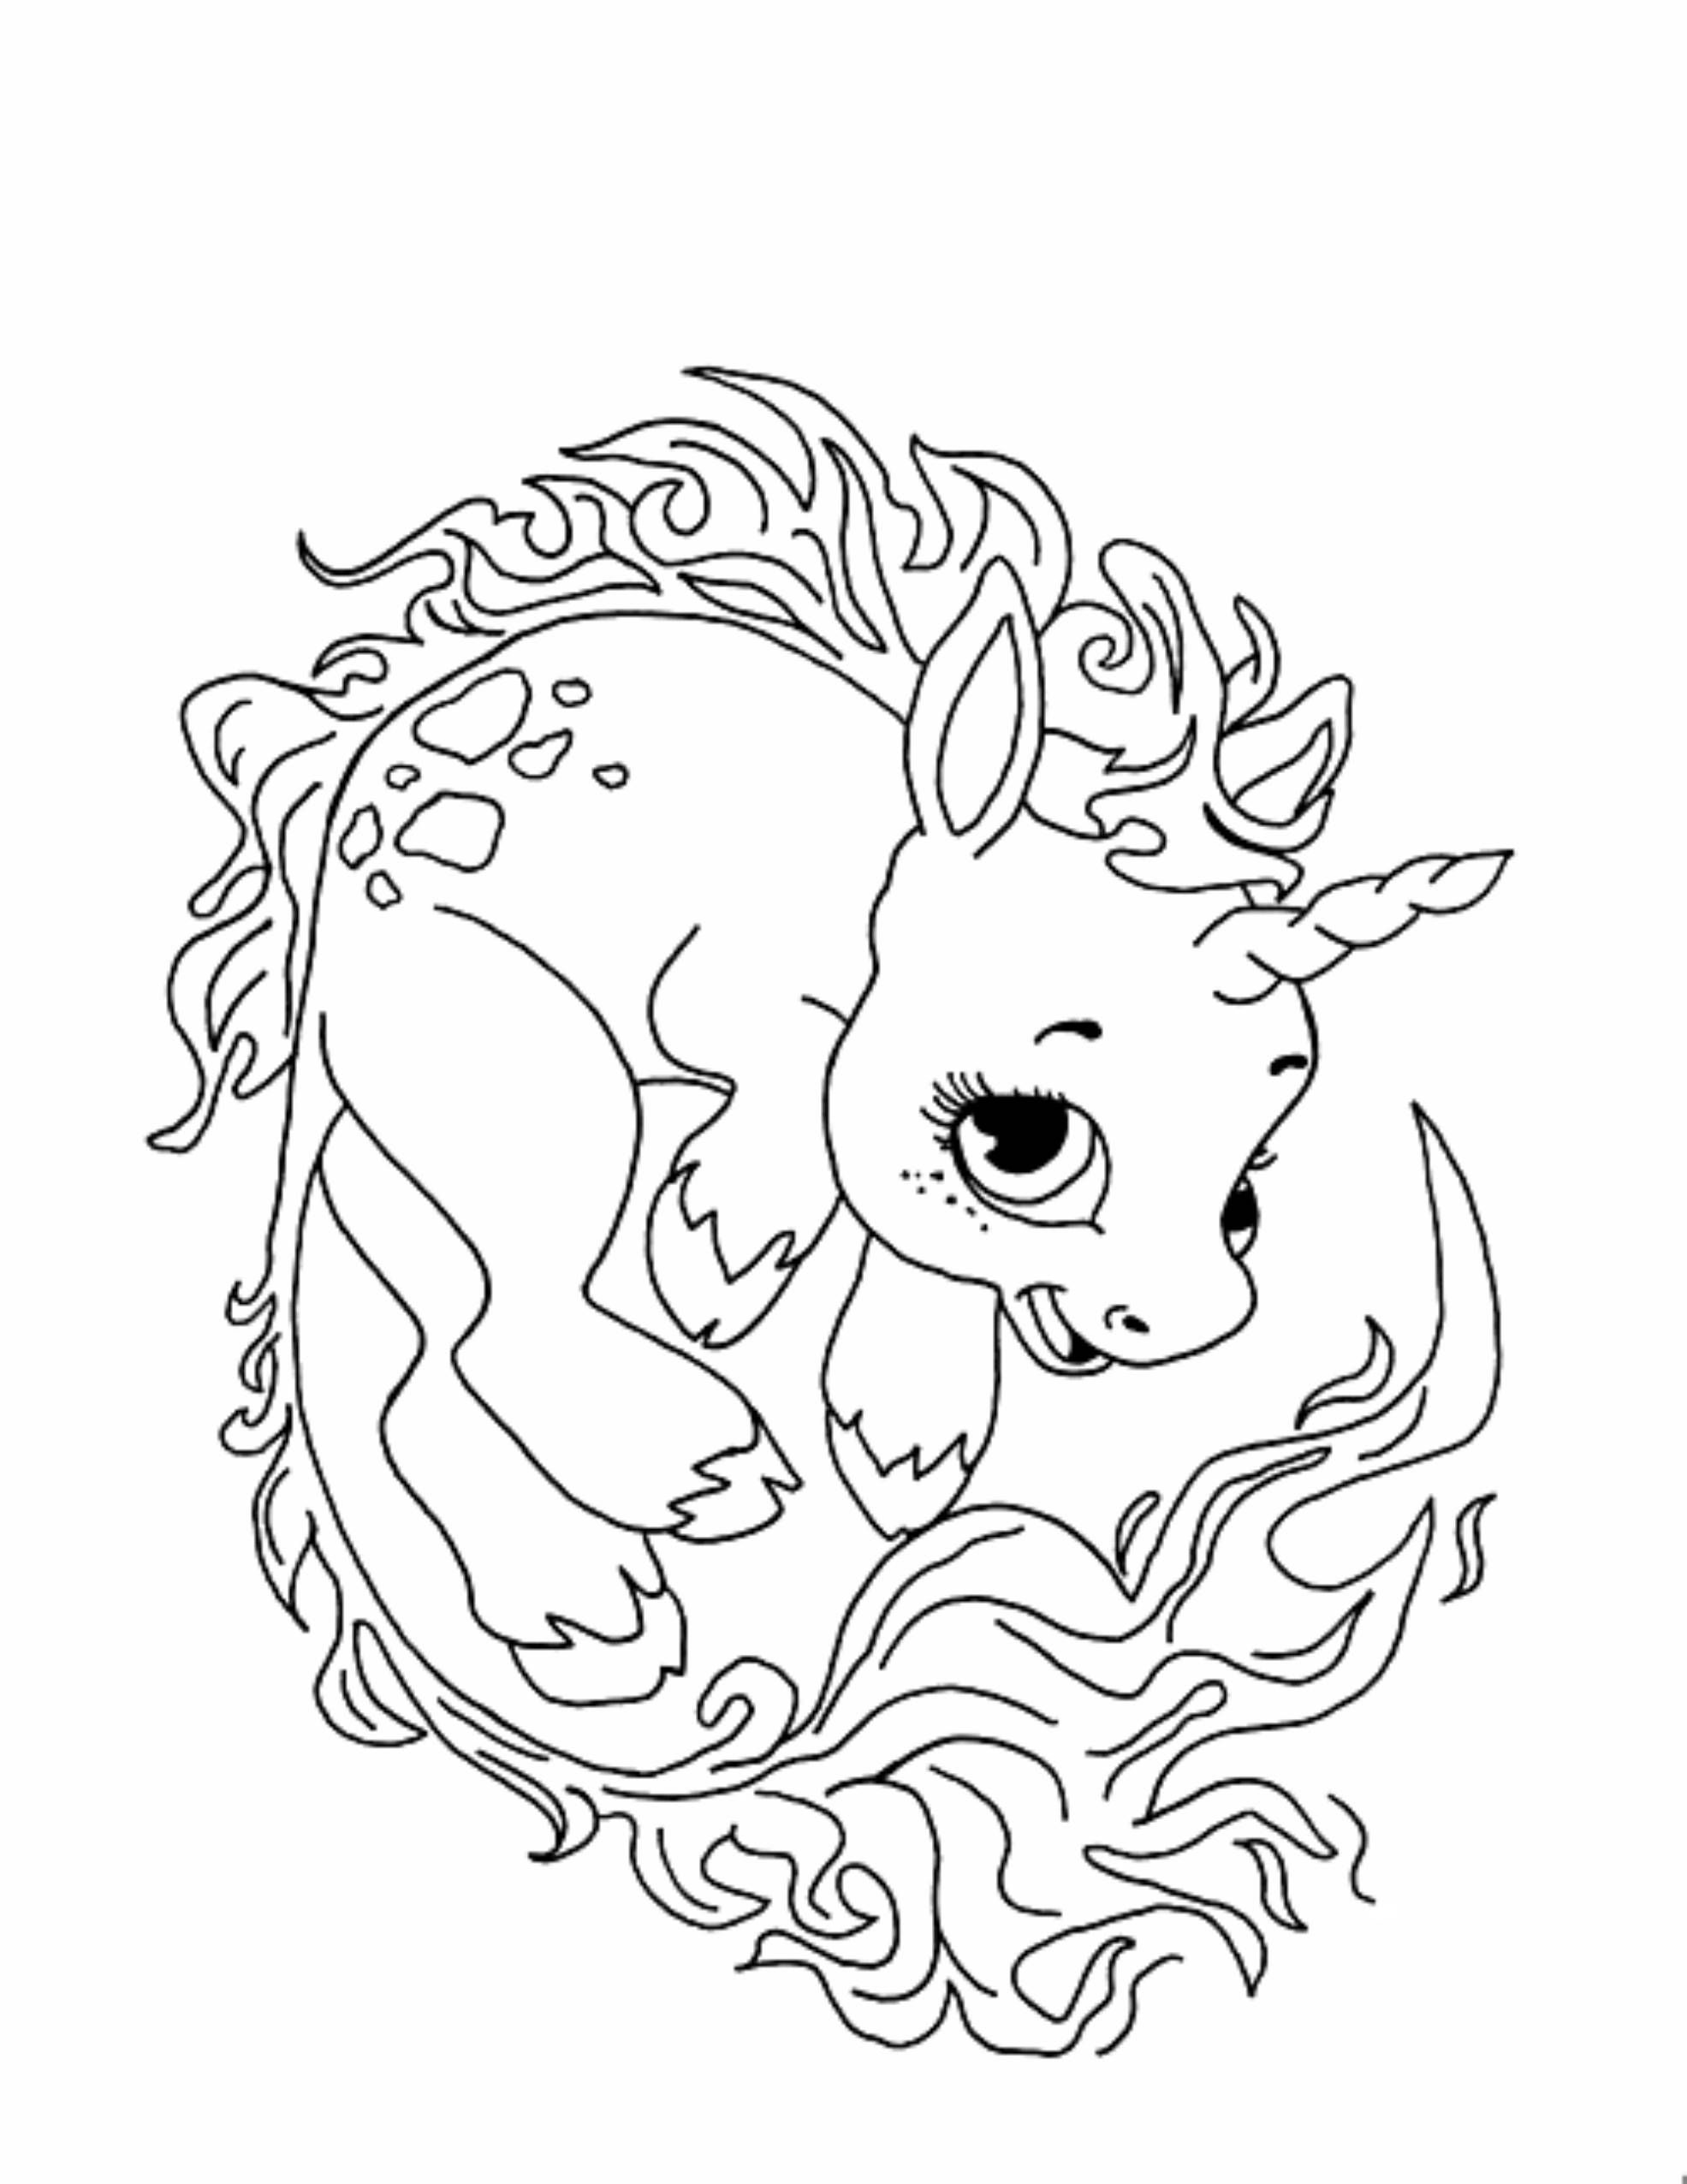 cute unicorn coloring pages | Coloring Pages/General | Pinterest ...